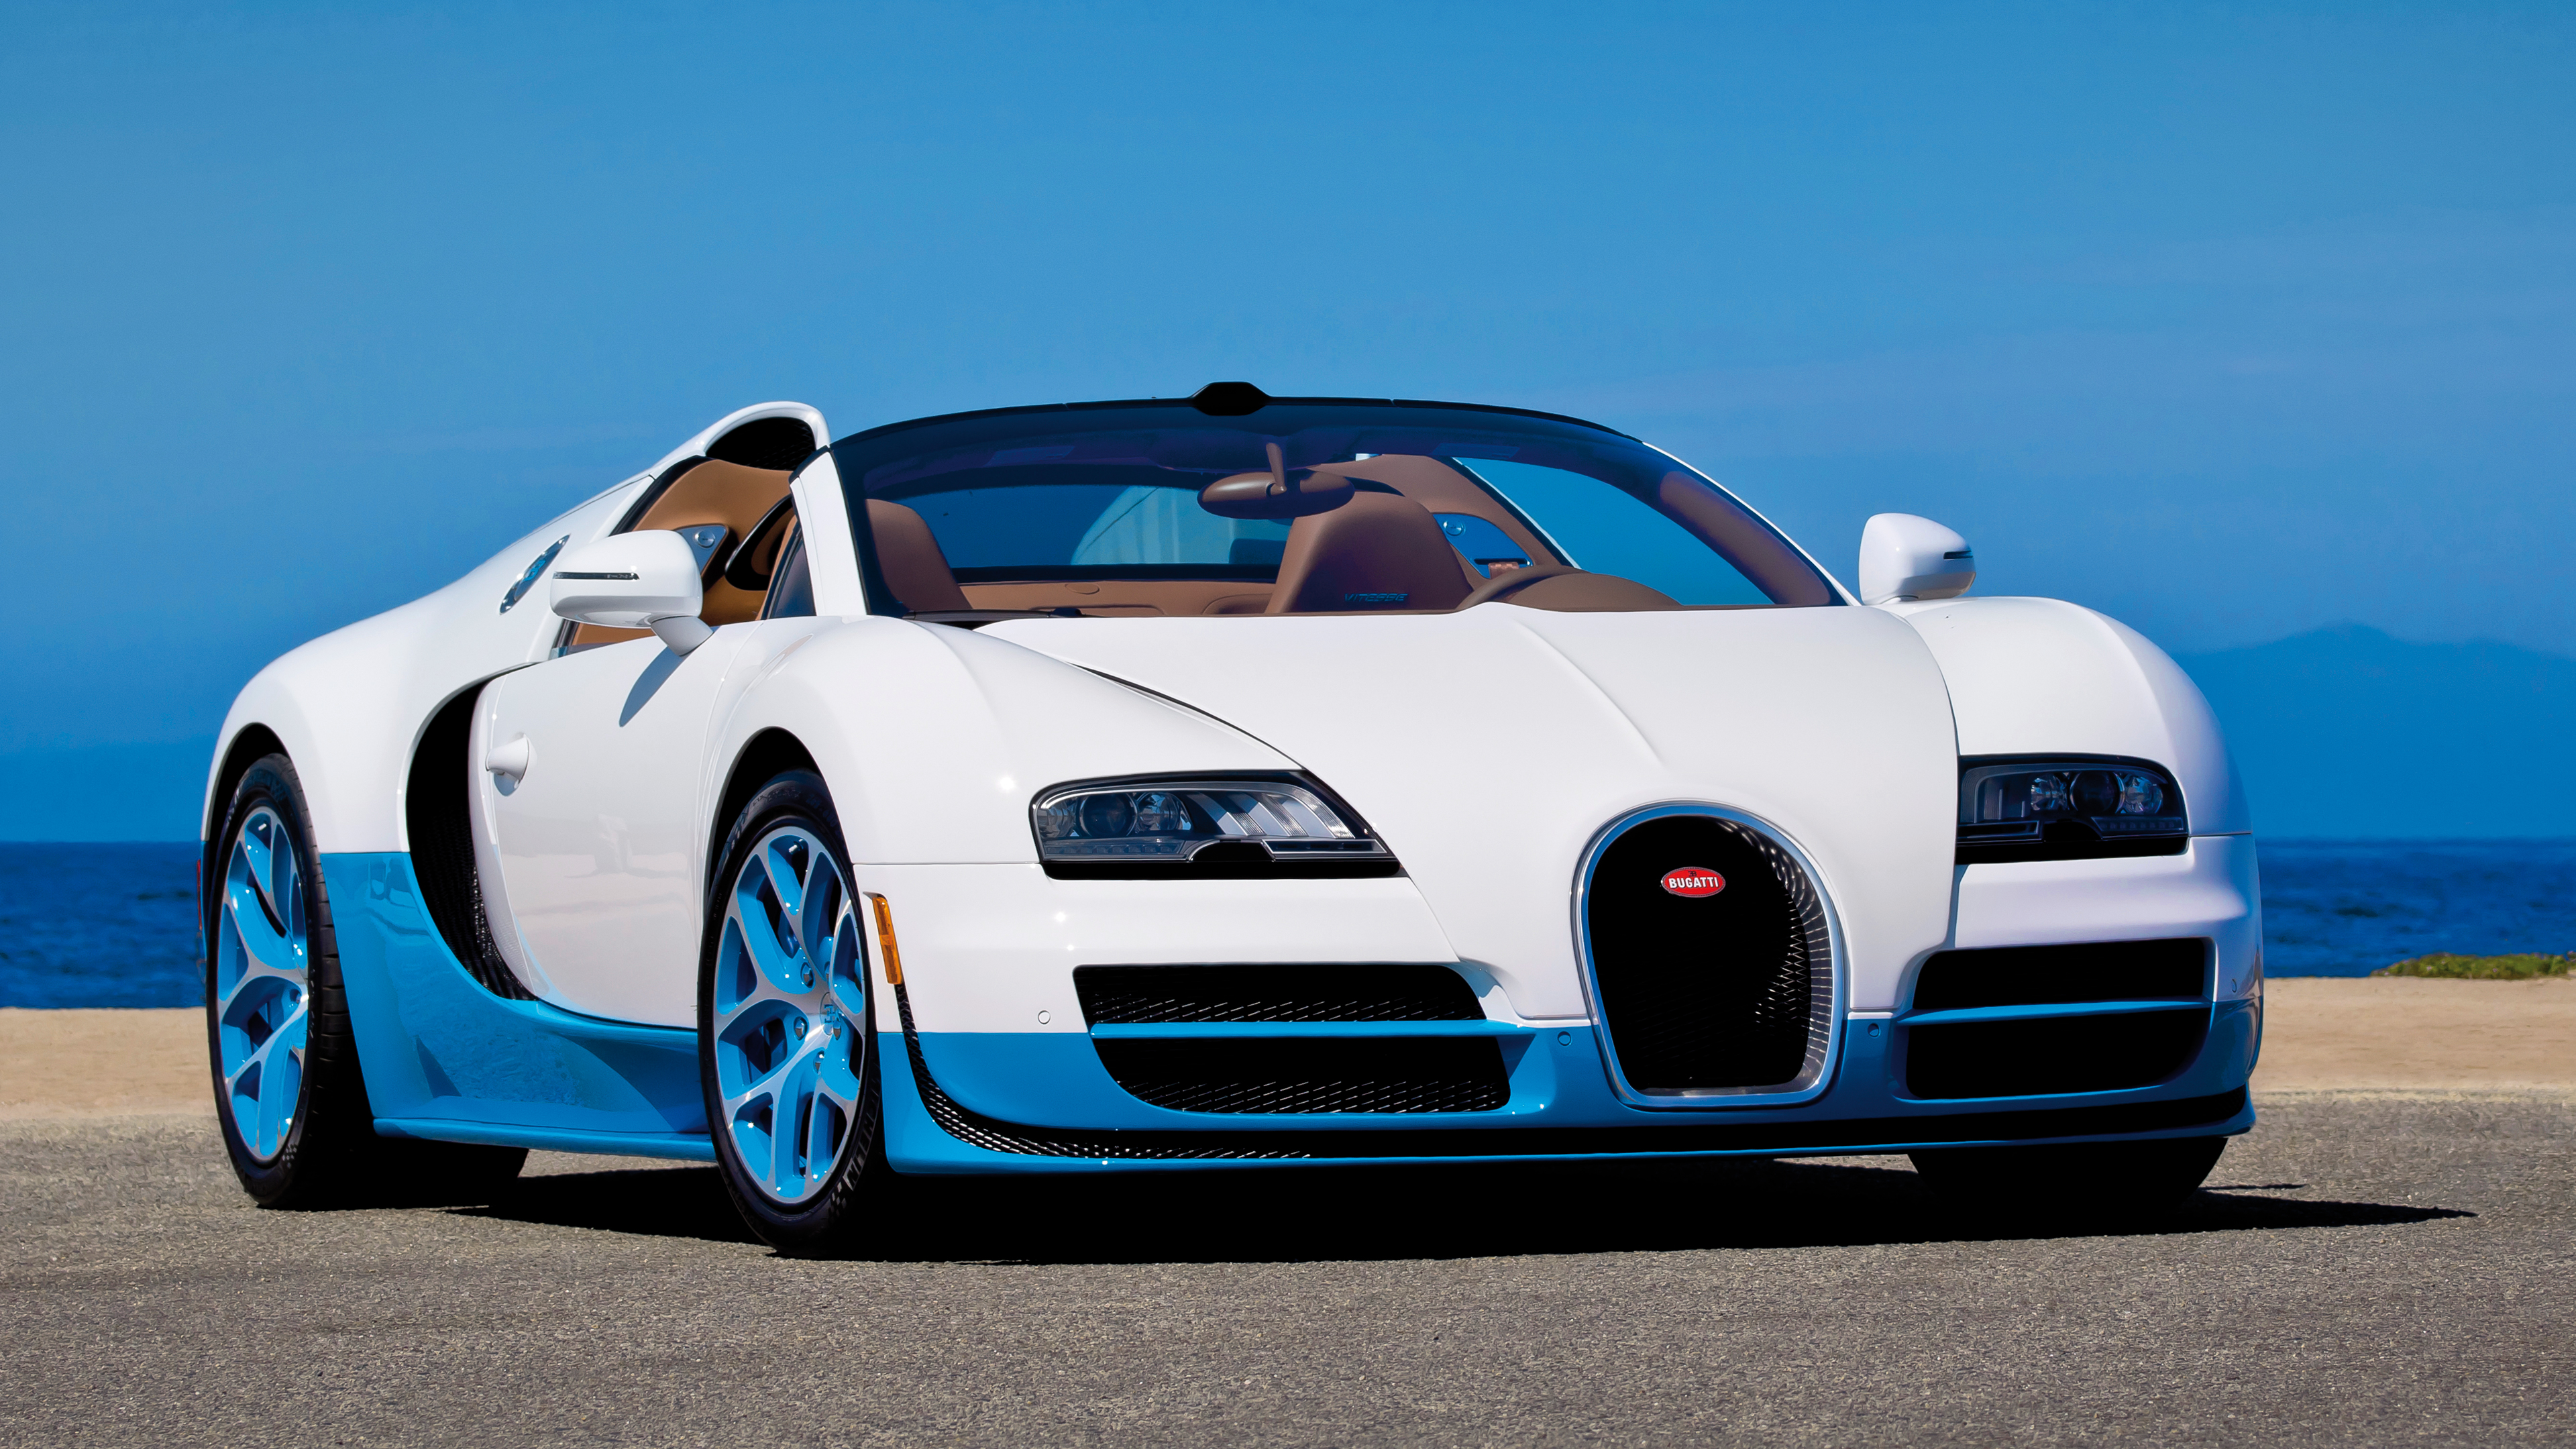 Bugatti Grand Sport Vitesse 4K UHD Wallpaper WallpaperEVO Wallpapers 3840x2160